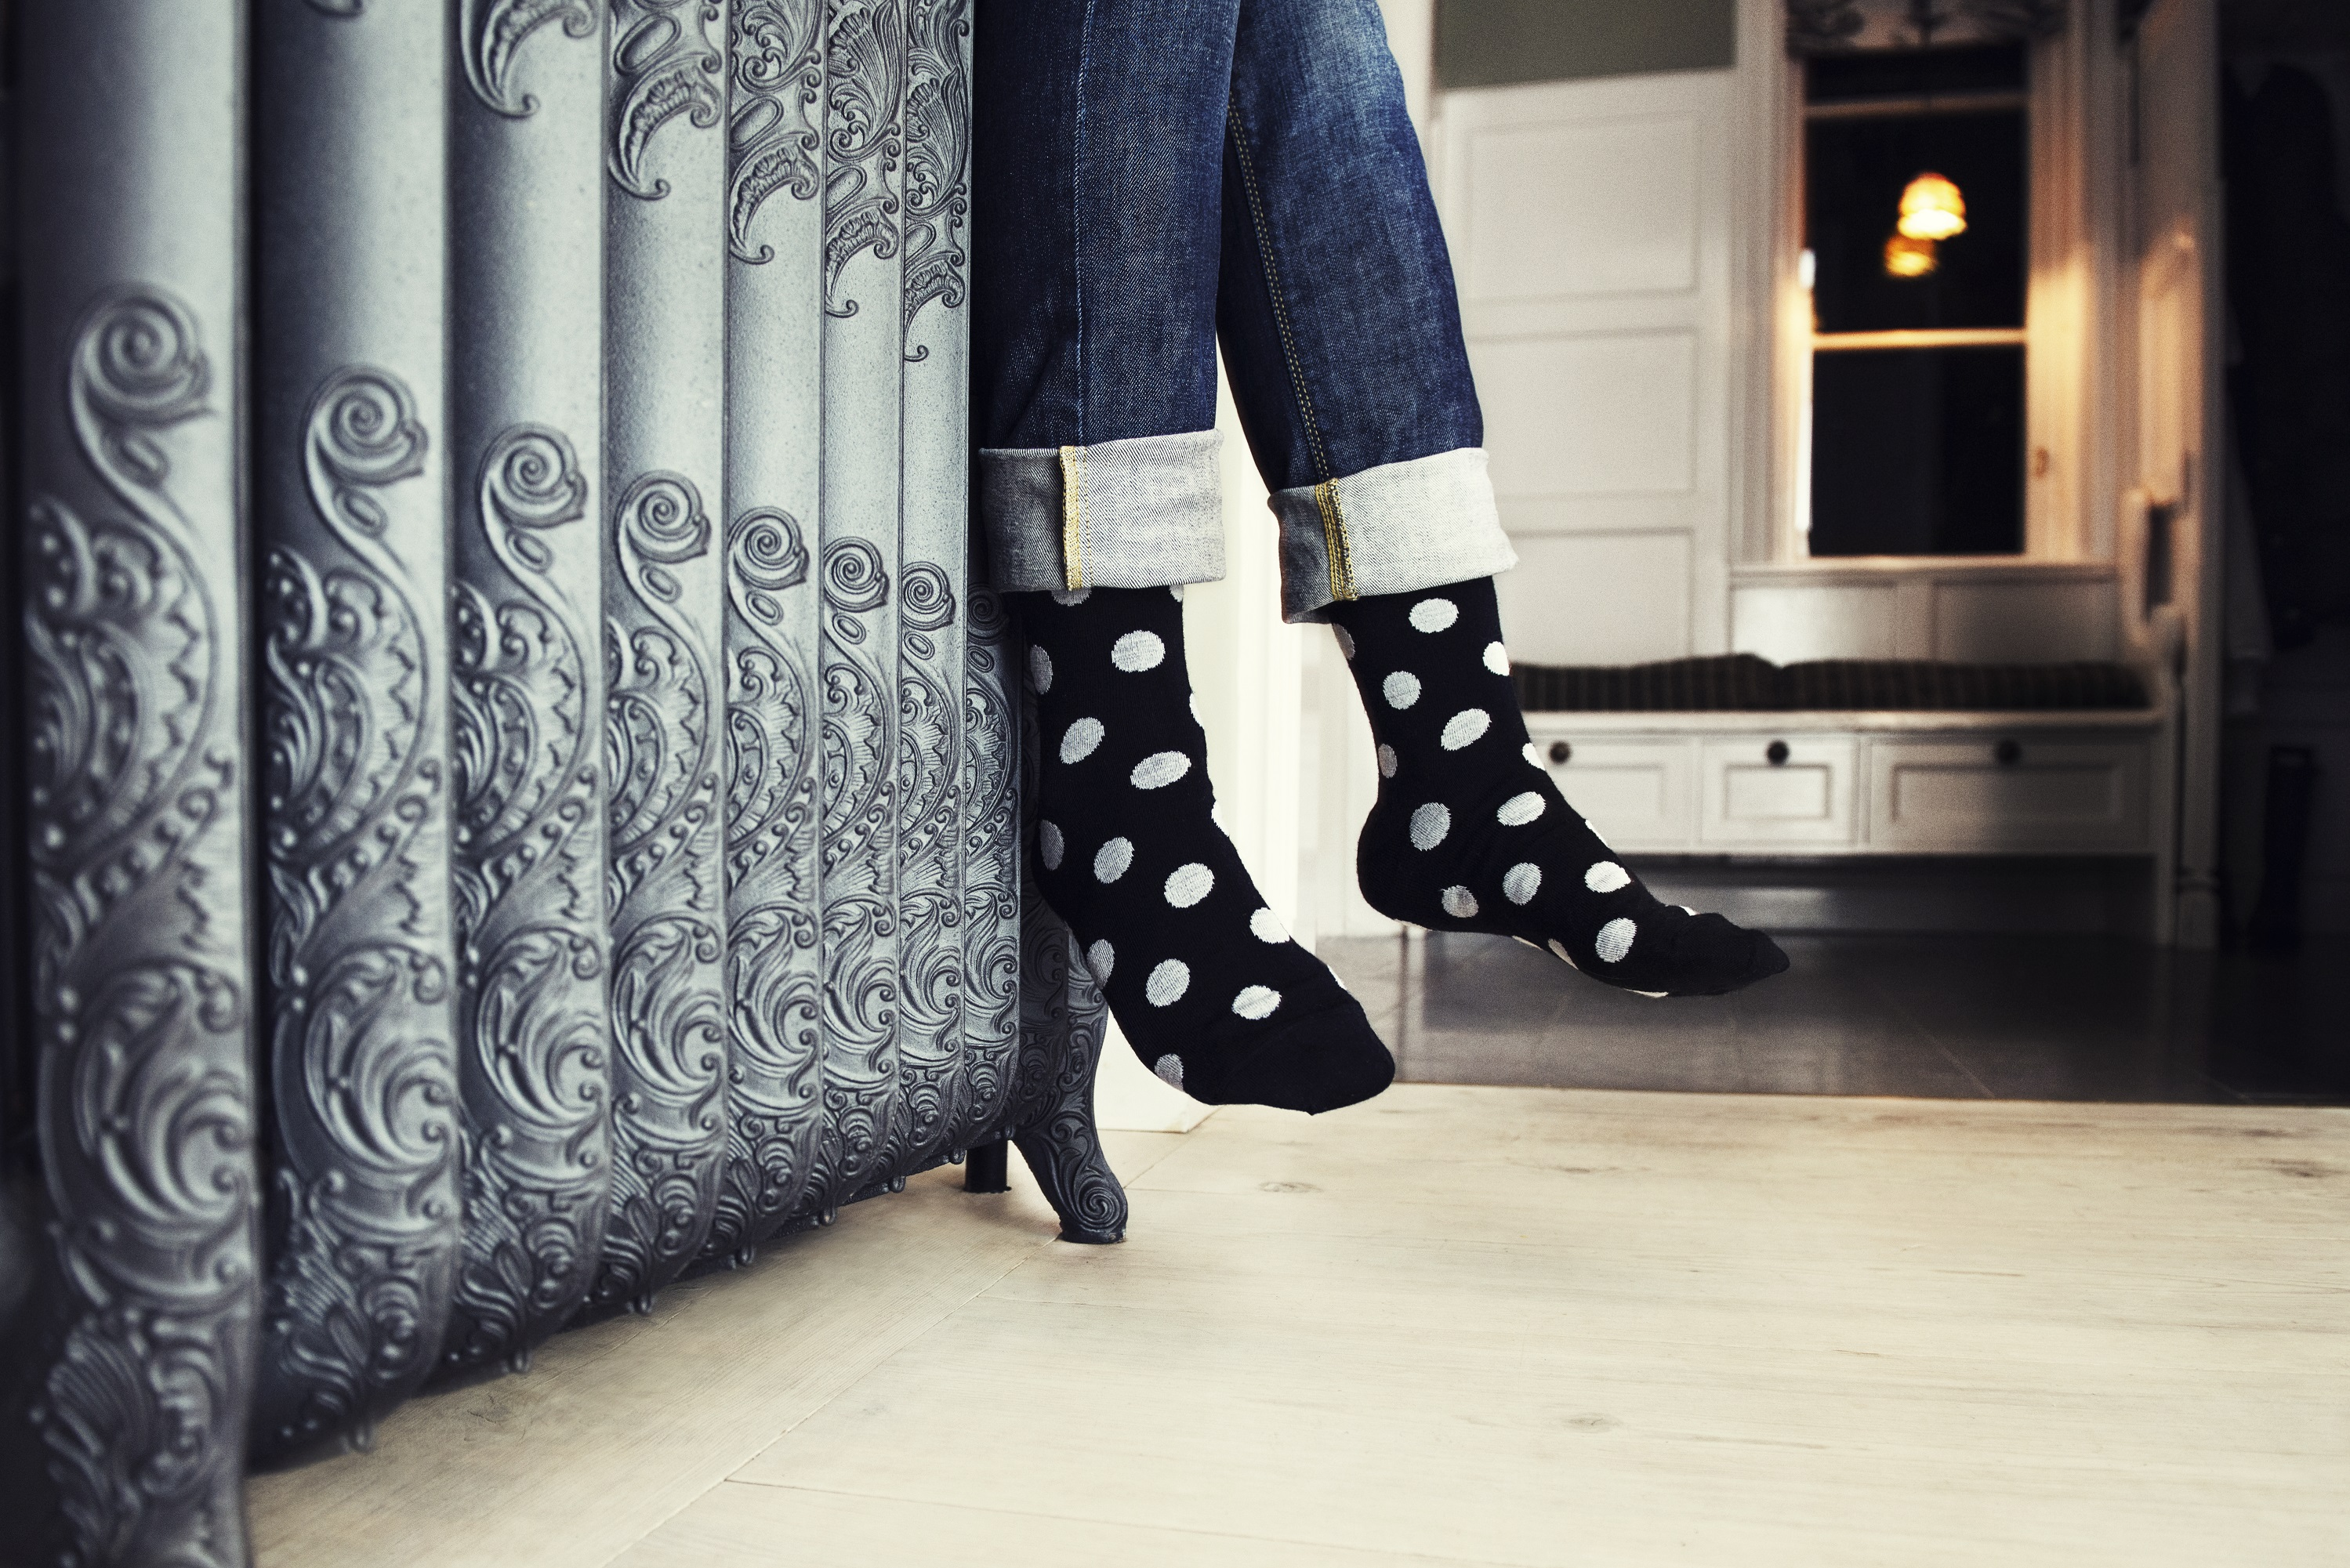 dotted-socks-in-environment-141207